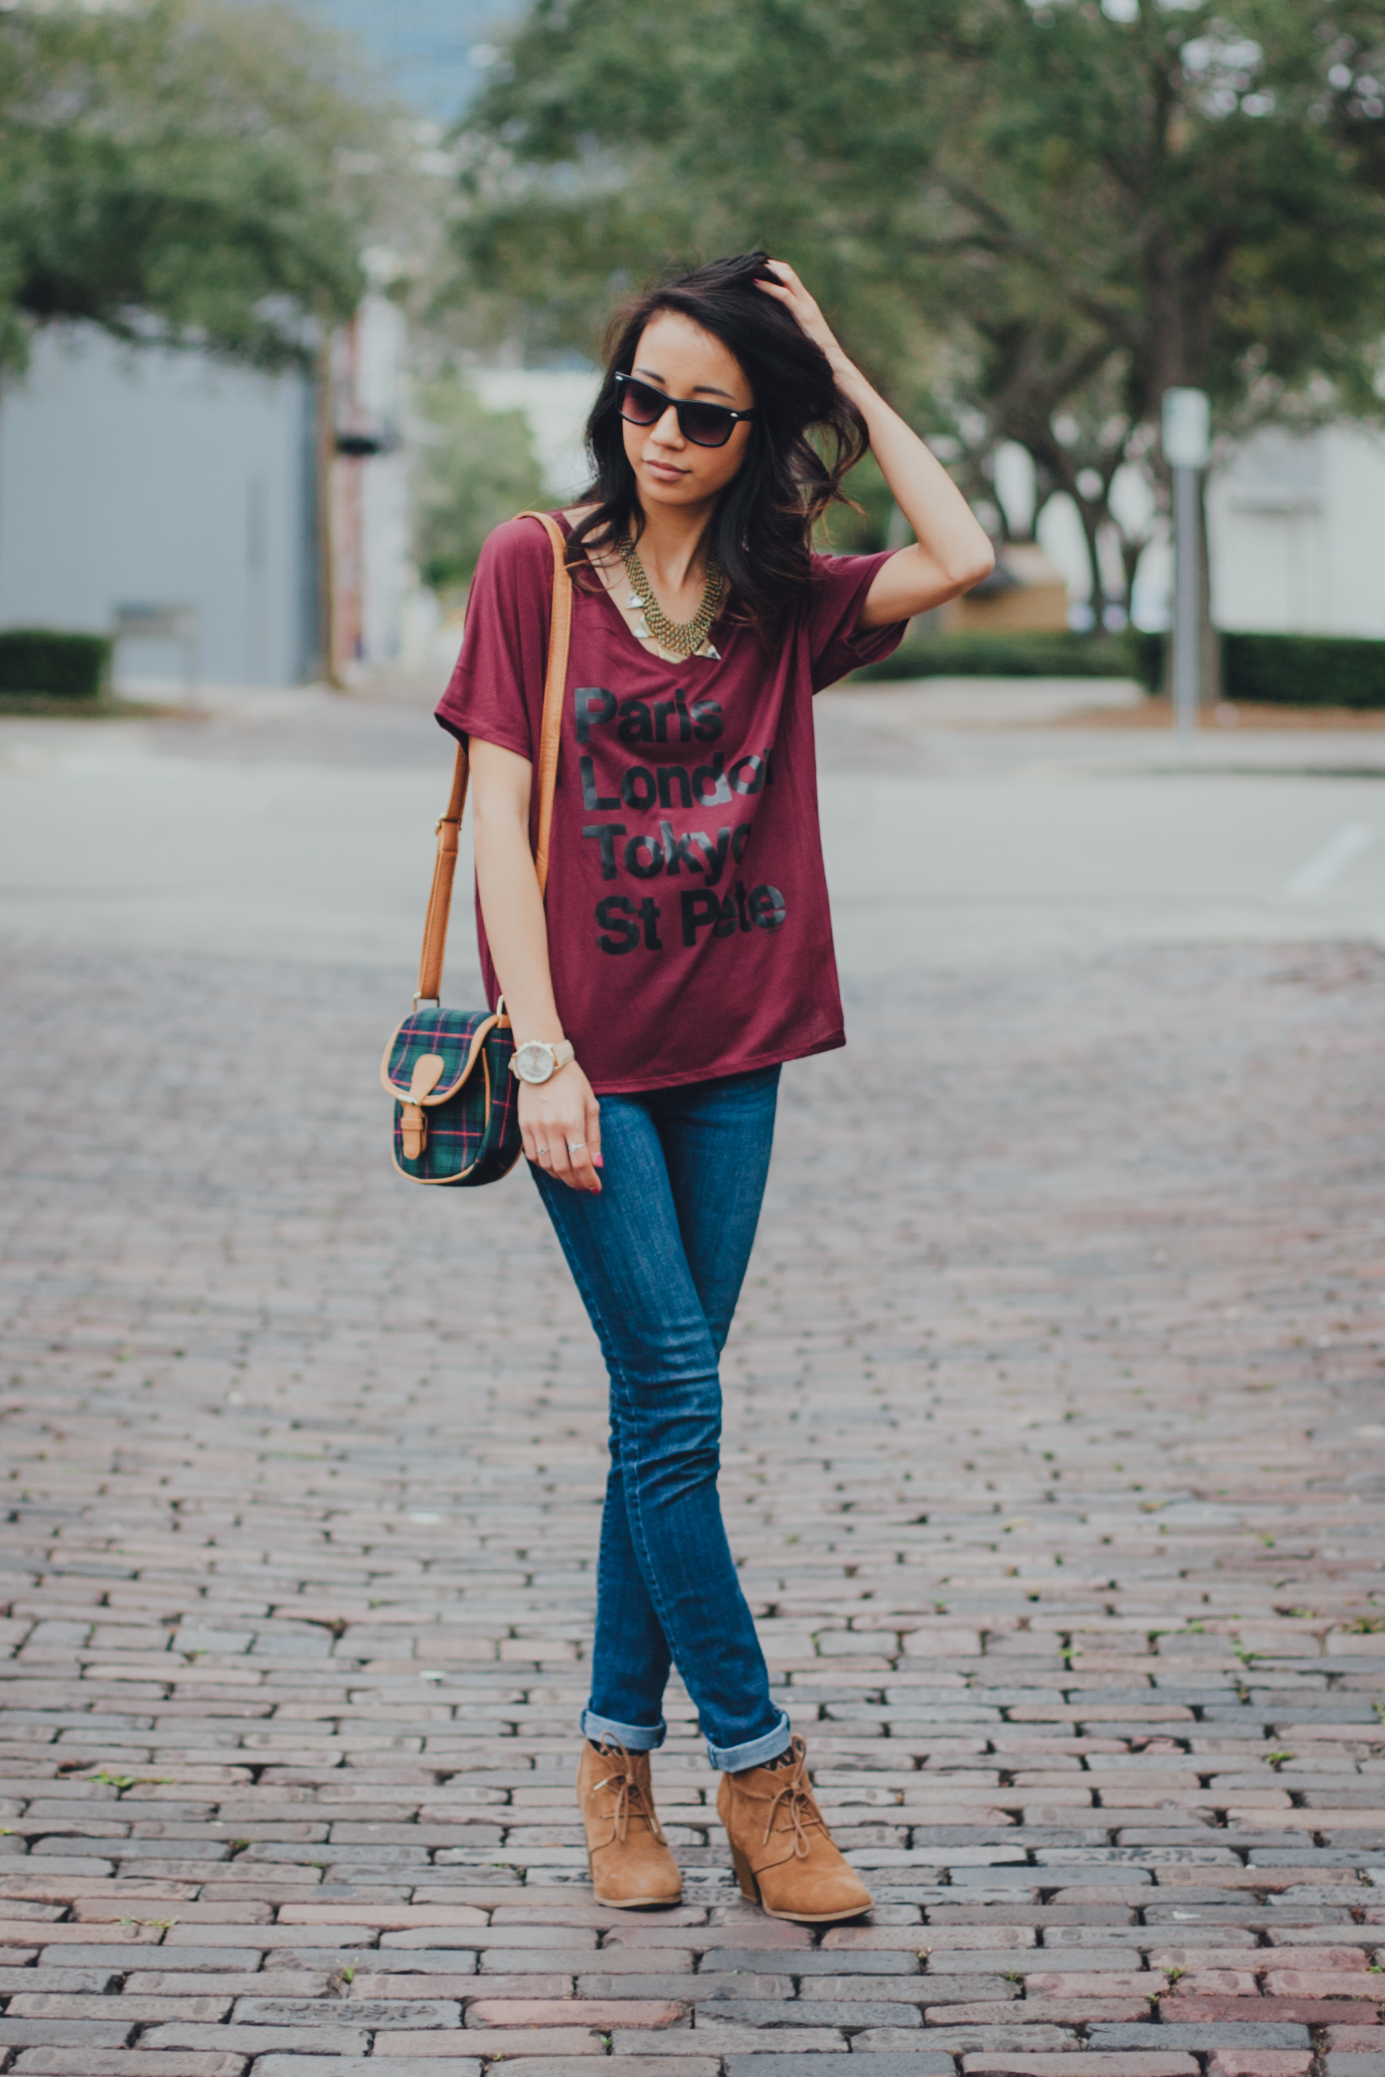 This Jenn Girl - MisRED Outfitters 2